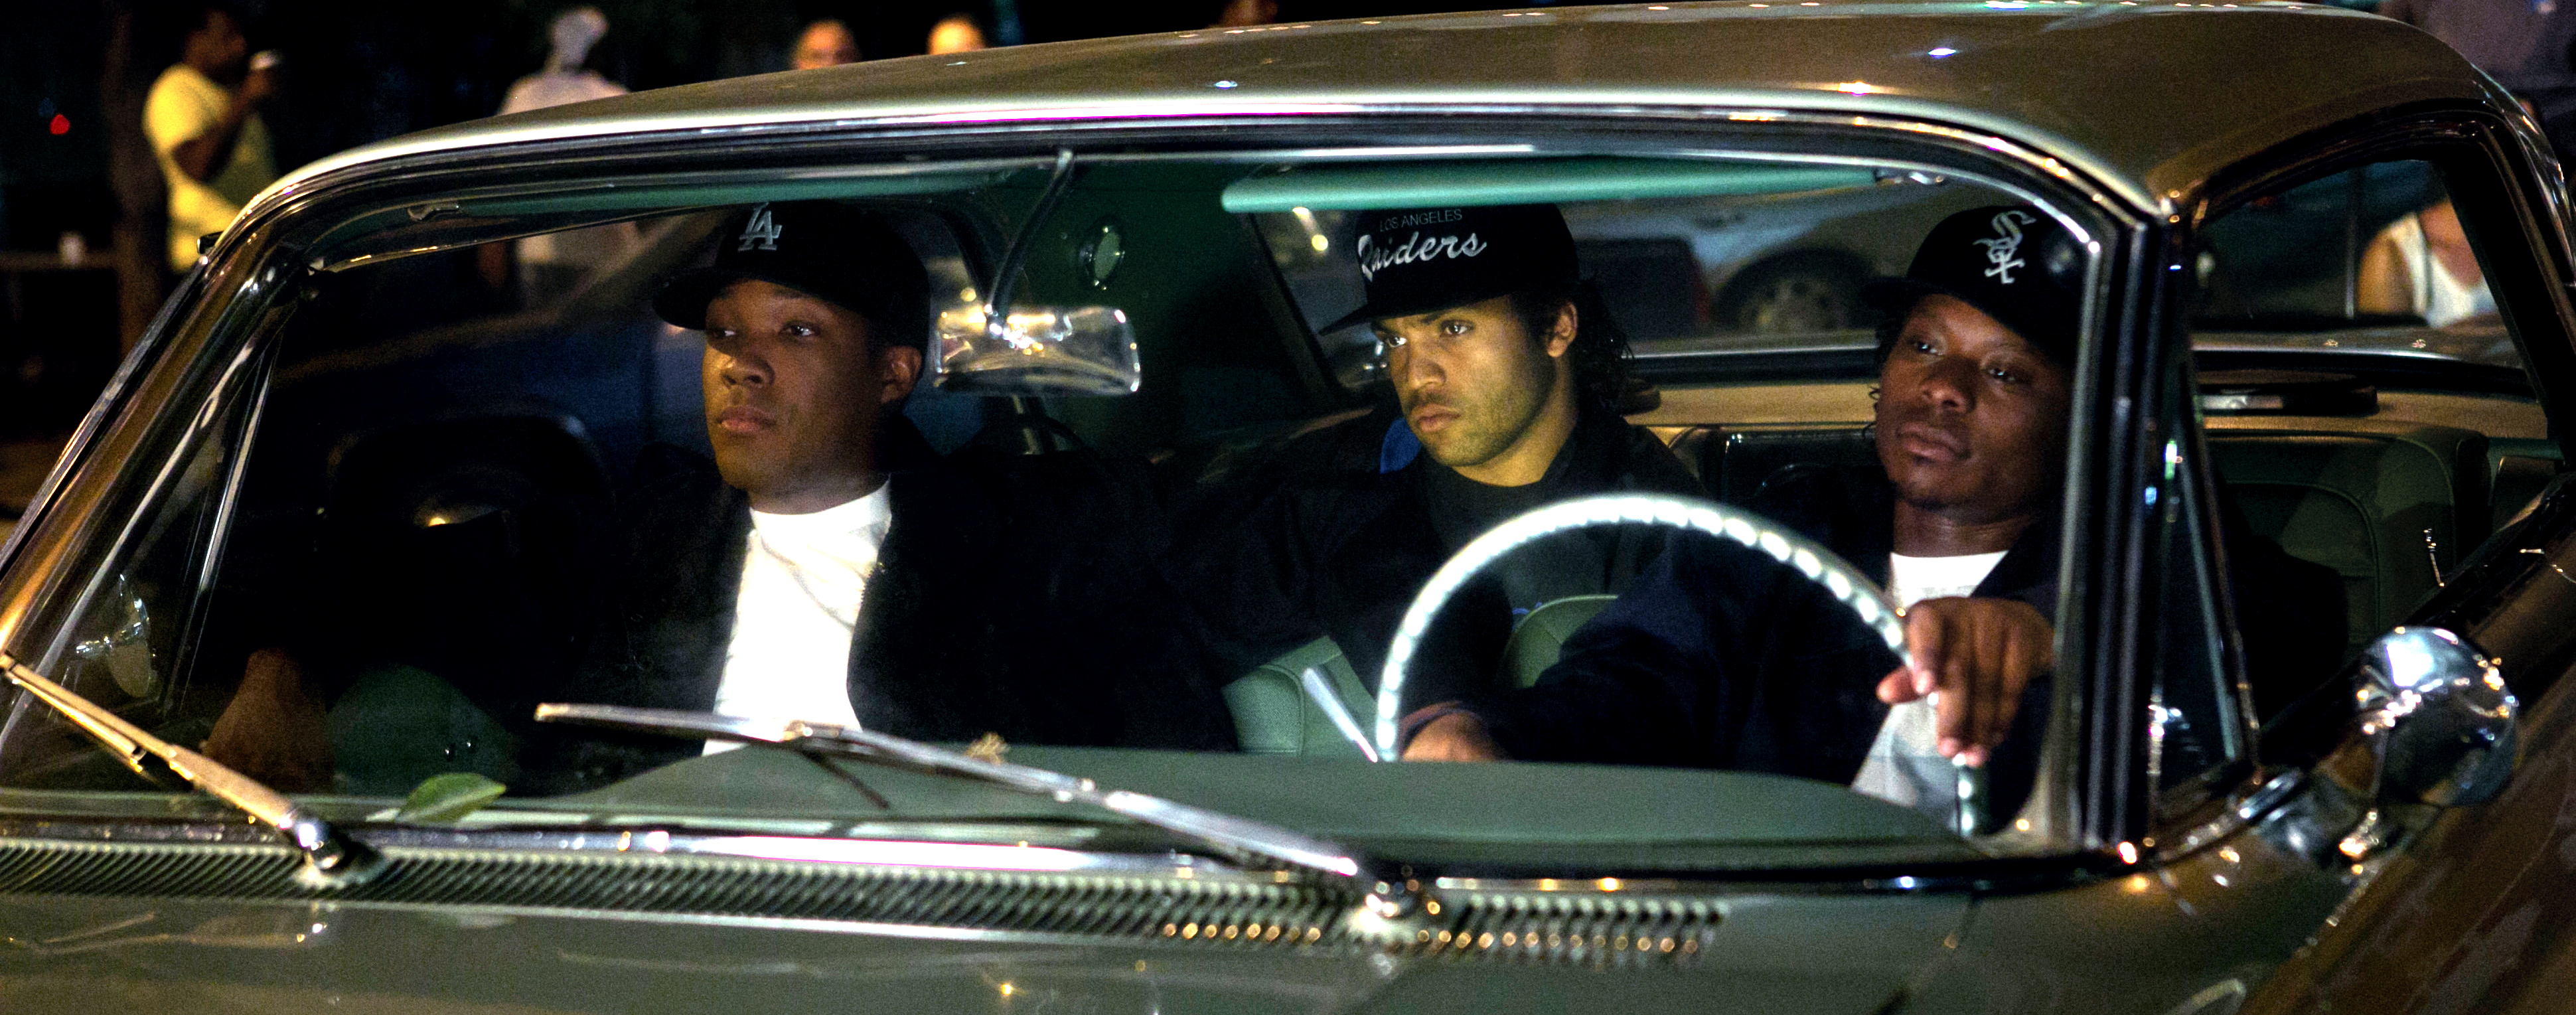 Various Suge Knight Represents: Chronic 2000